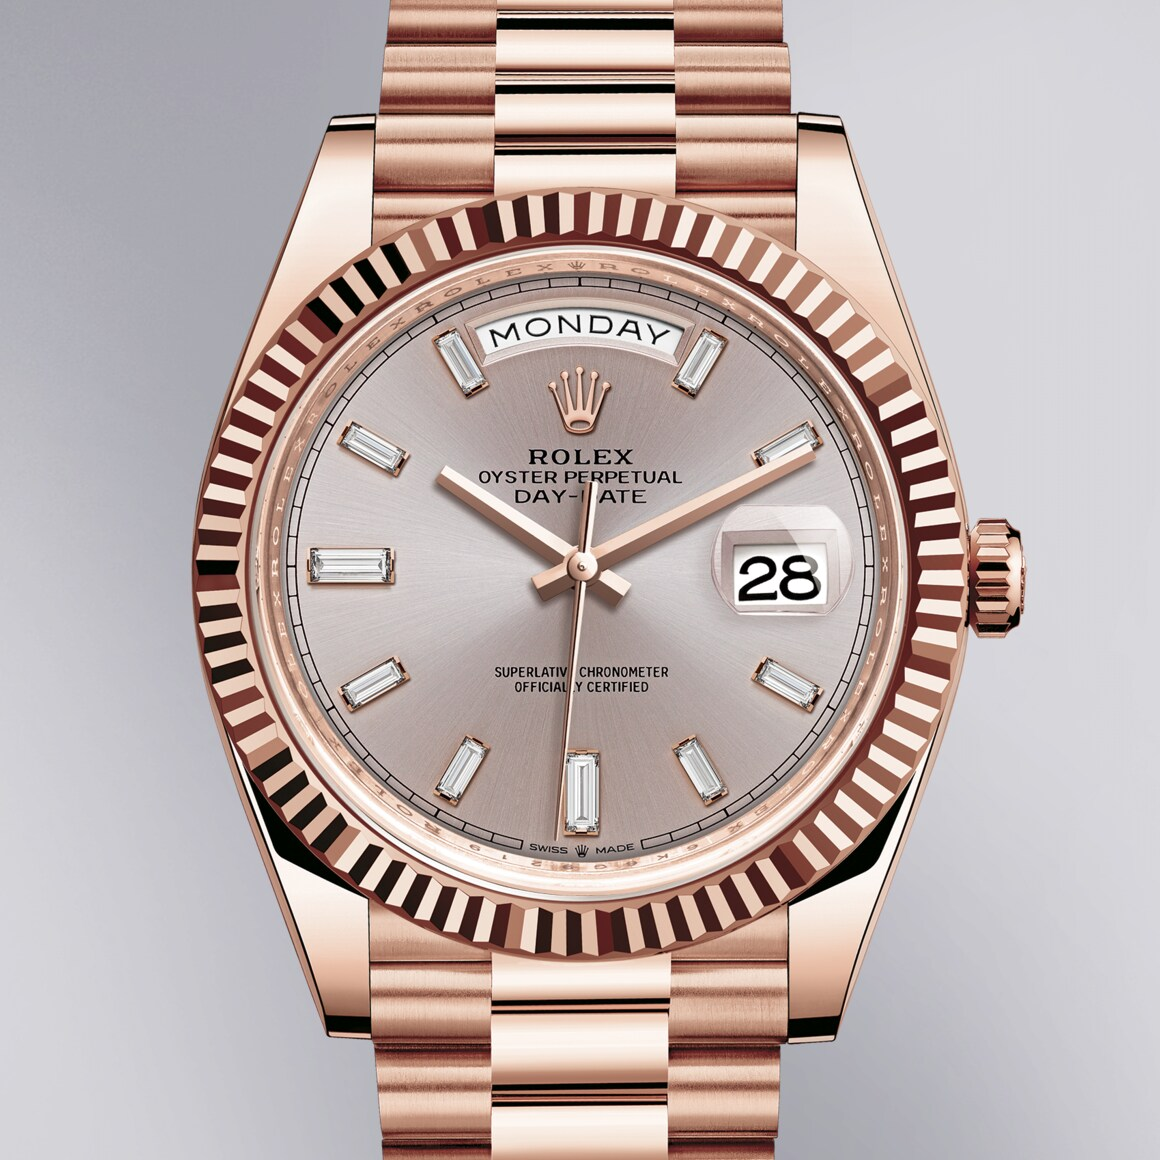 Rolex Oyster Perpetual Day-Date 40 In 18 ct Everose Gold - Kee Hing Hung